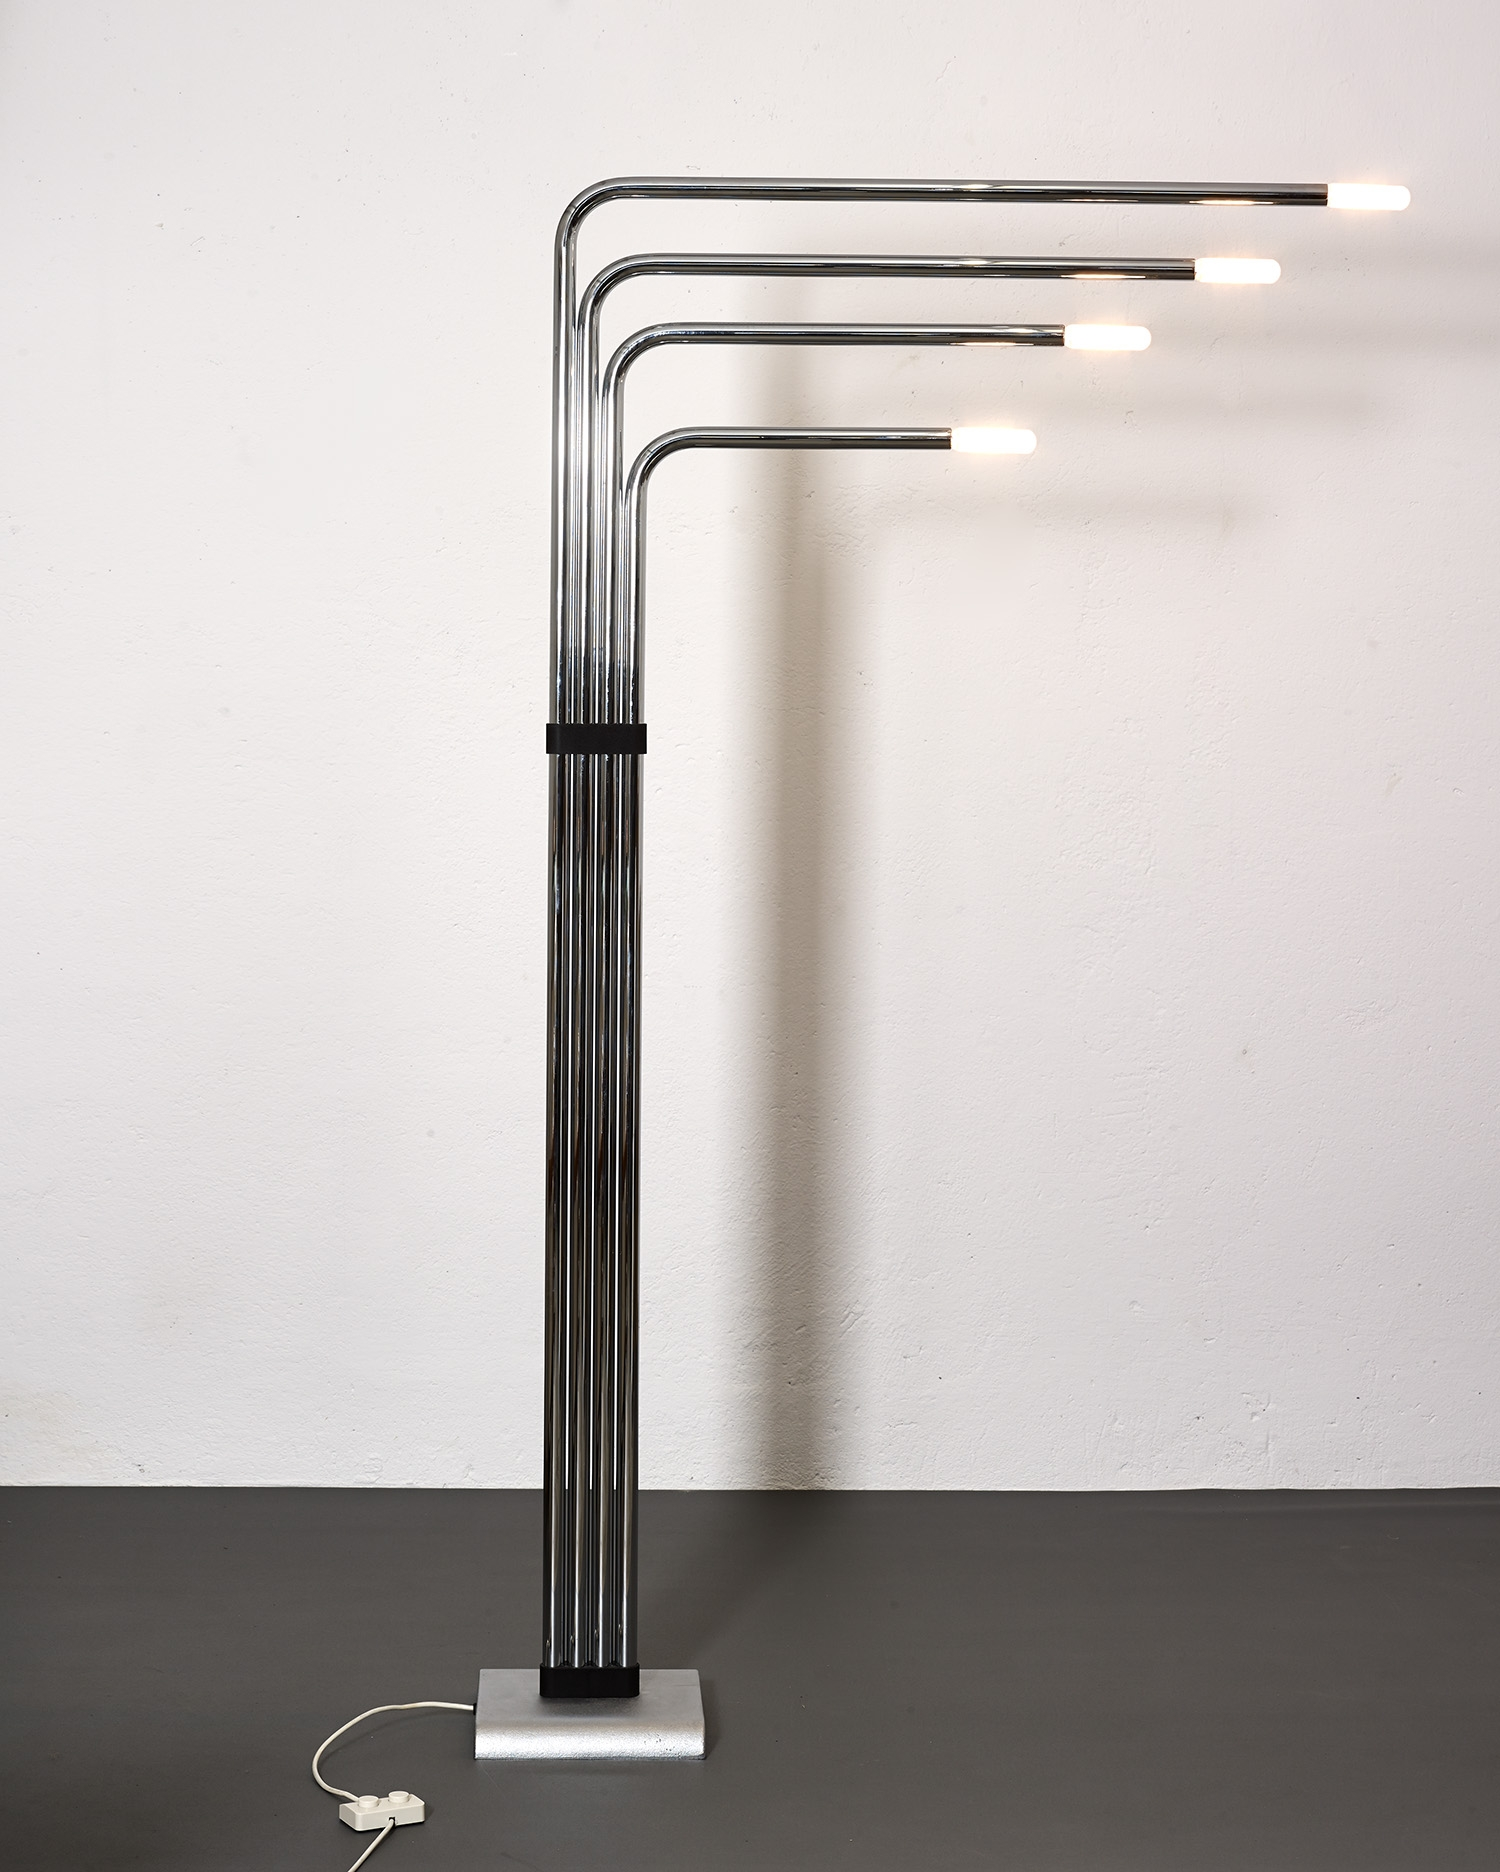 architectural-floor-lamp-by-reggiani-1970-image-04